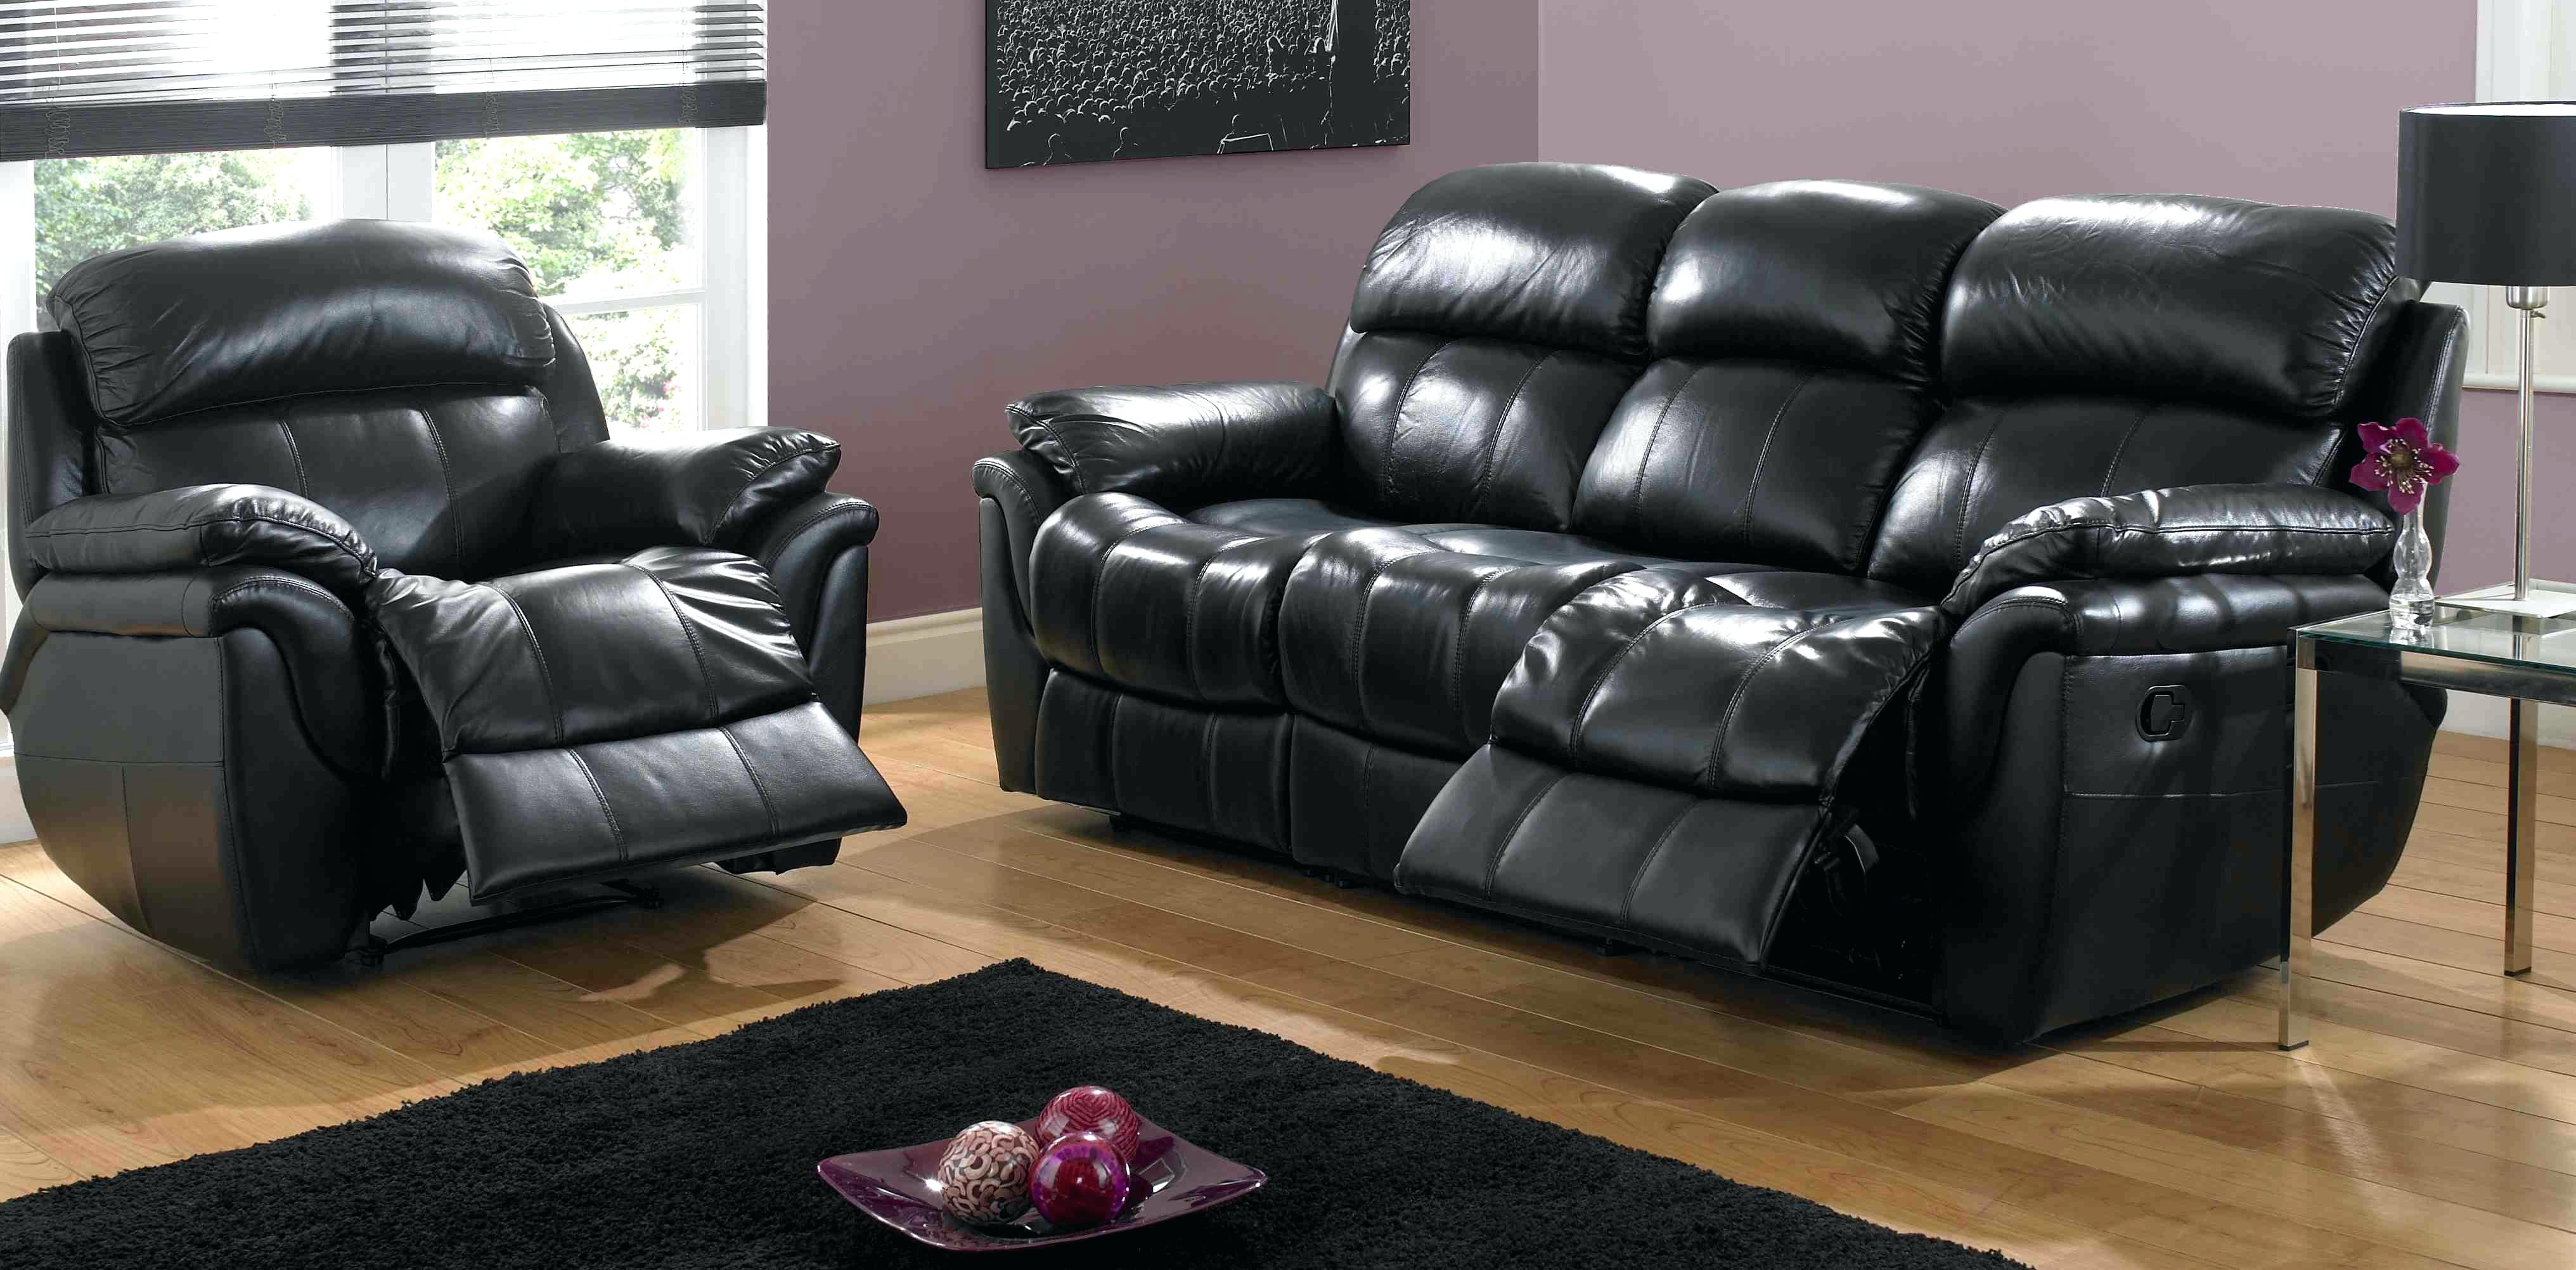 Best And Newest Kijiji Ottawa Sectional Sofas Within Sectional Sofas For Sale Clearance Canada Couch Ottawa Kijiji (View 3 of 15)